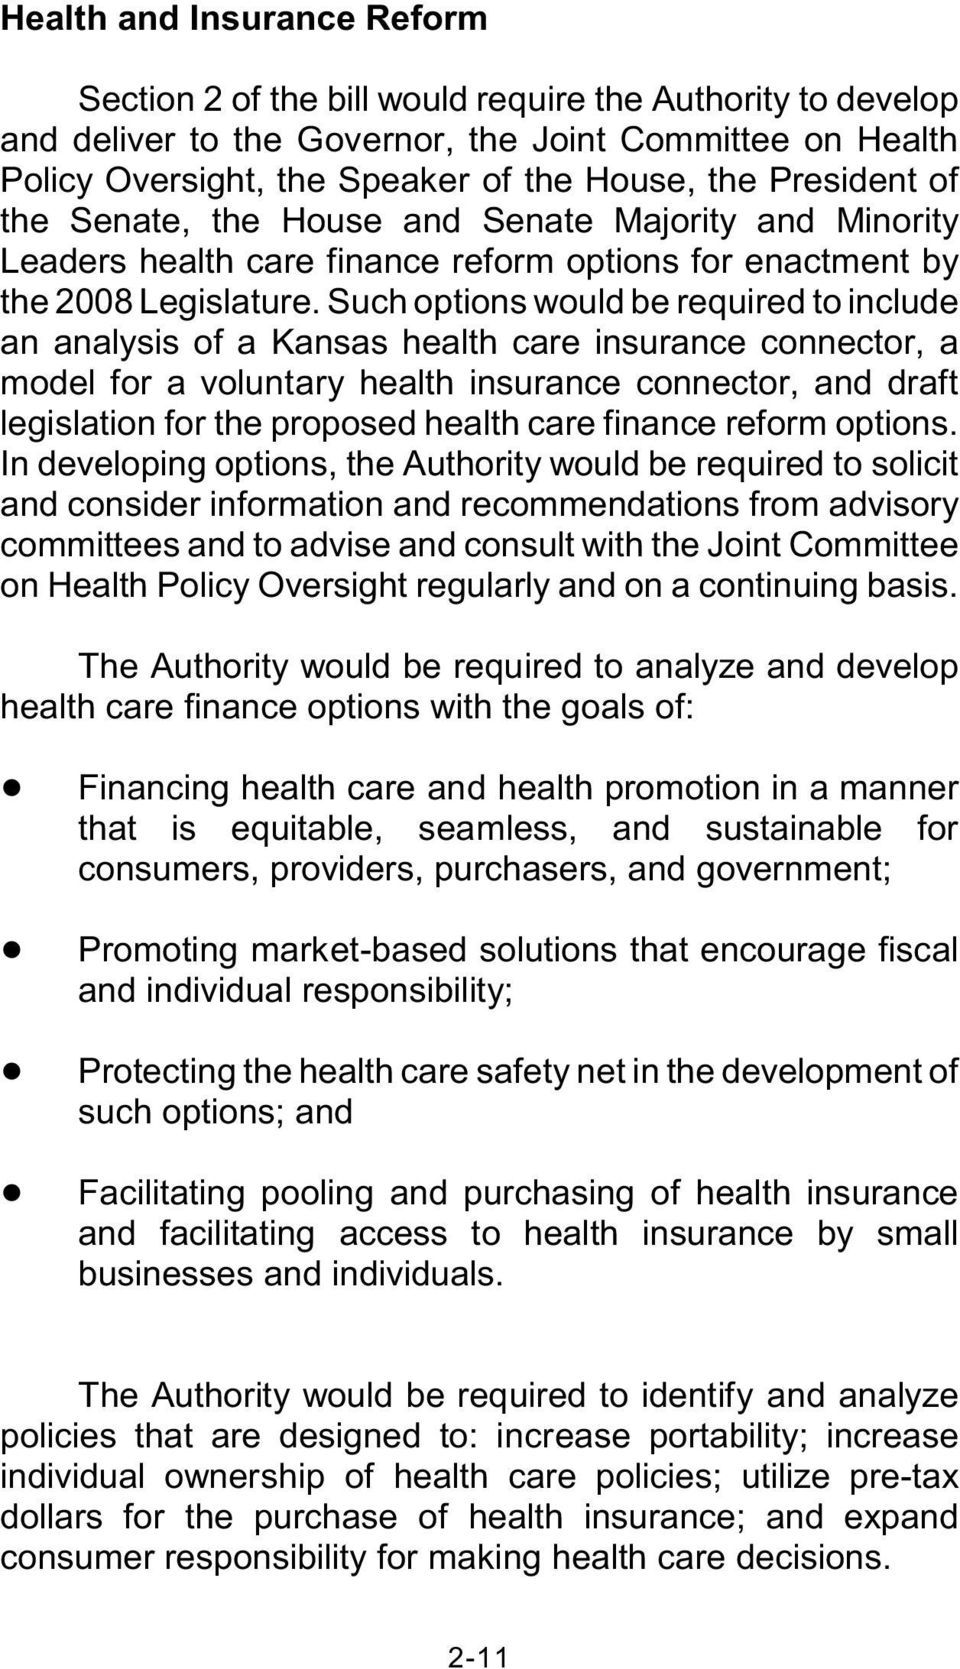 Such options would be required to include an analysis of a Kansas health care insurance connector, a model for a voluntary health insurance connector, and draft legislation for the proposed health